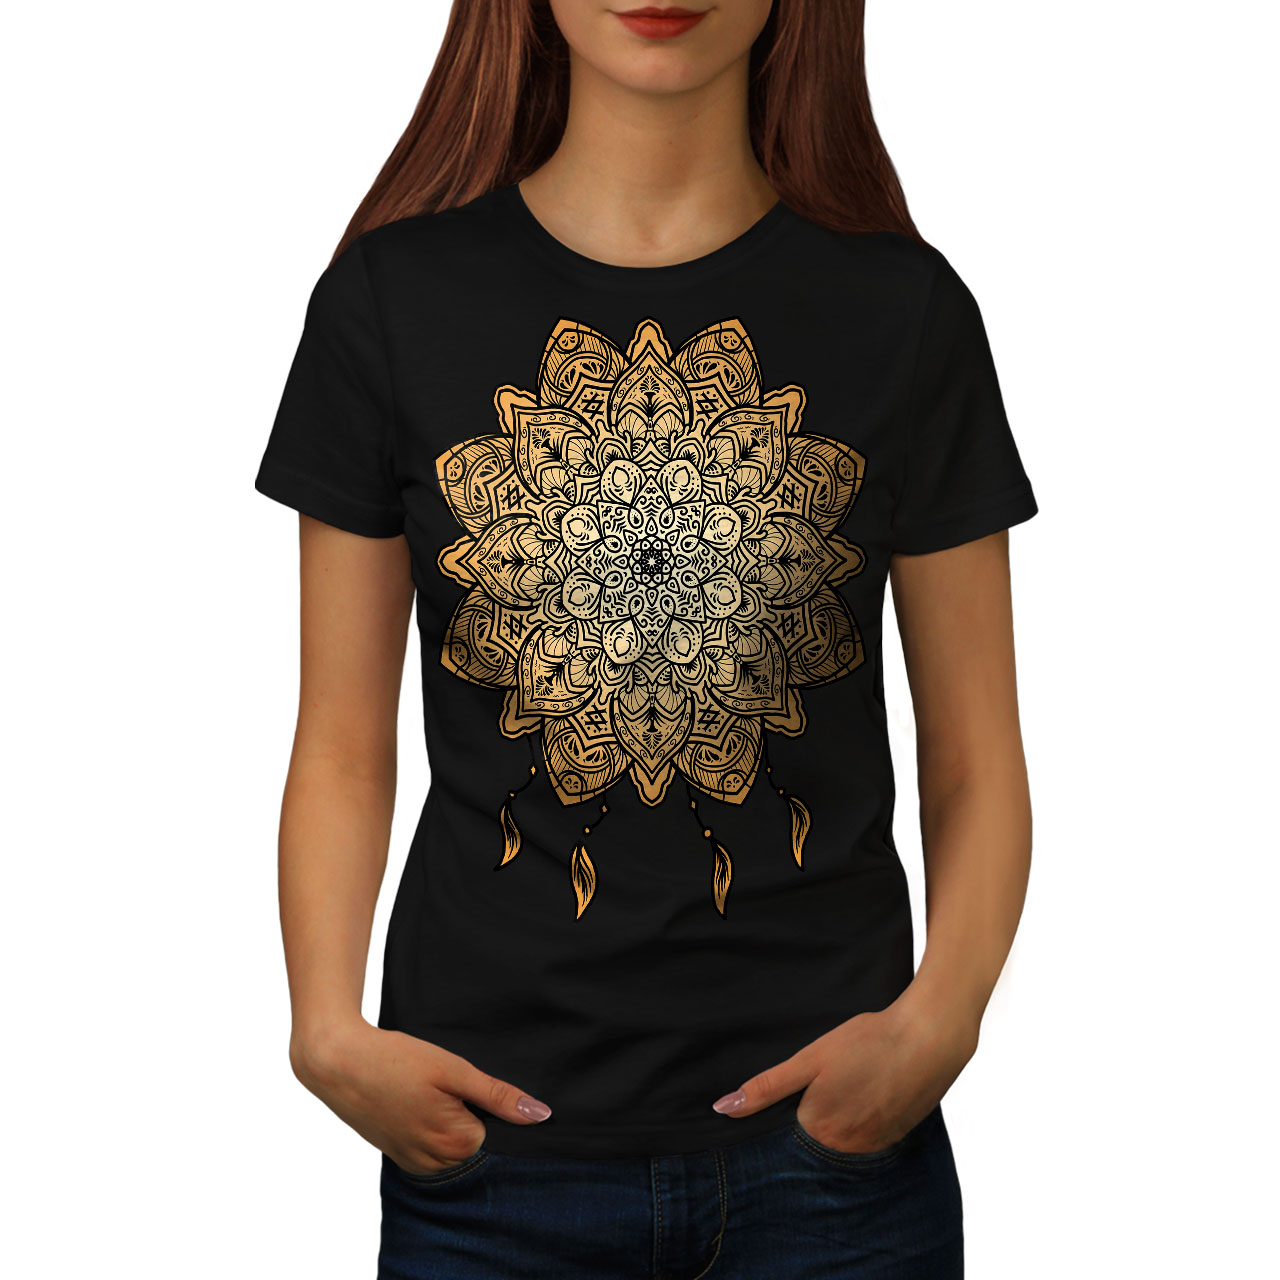 Wellcoda-Mandala-Yoga-Womens-T-shirt-Spiritual-Casual-Design-Printed-Tee thumbnail 3